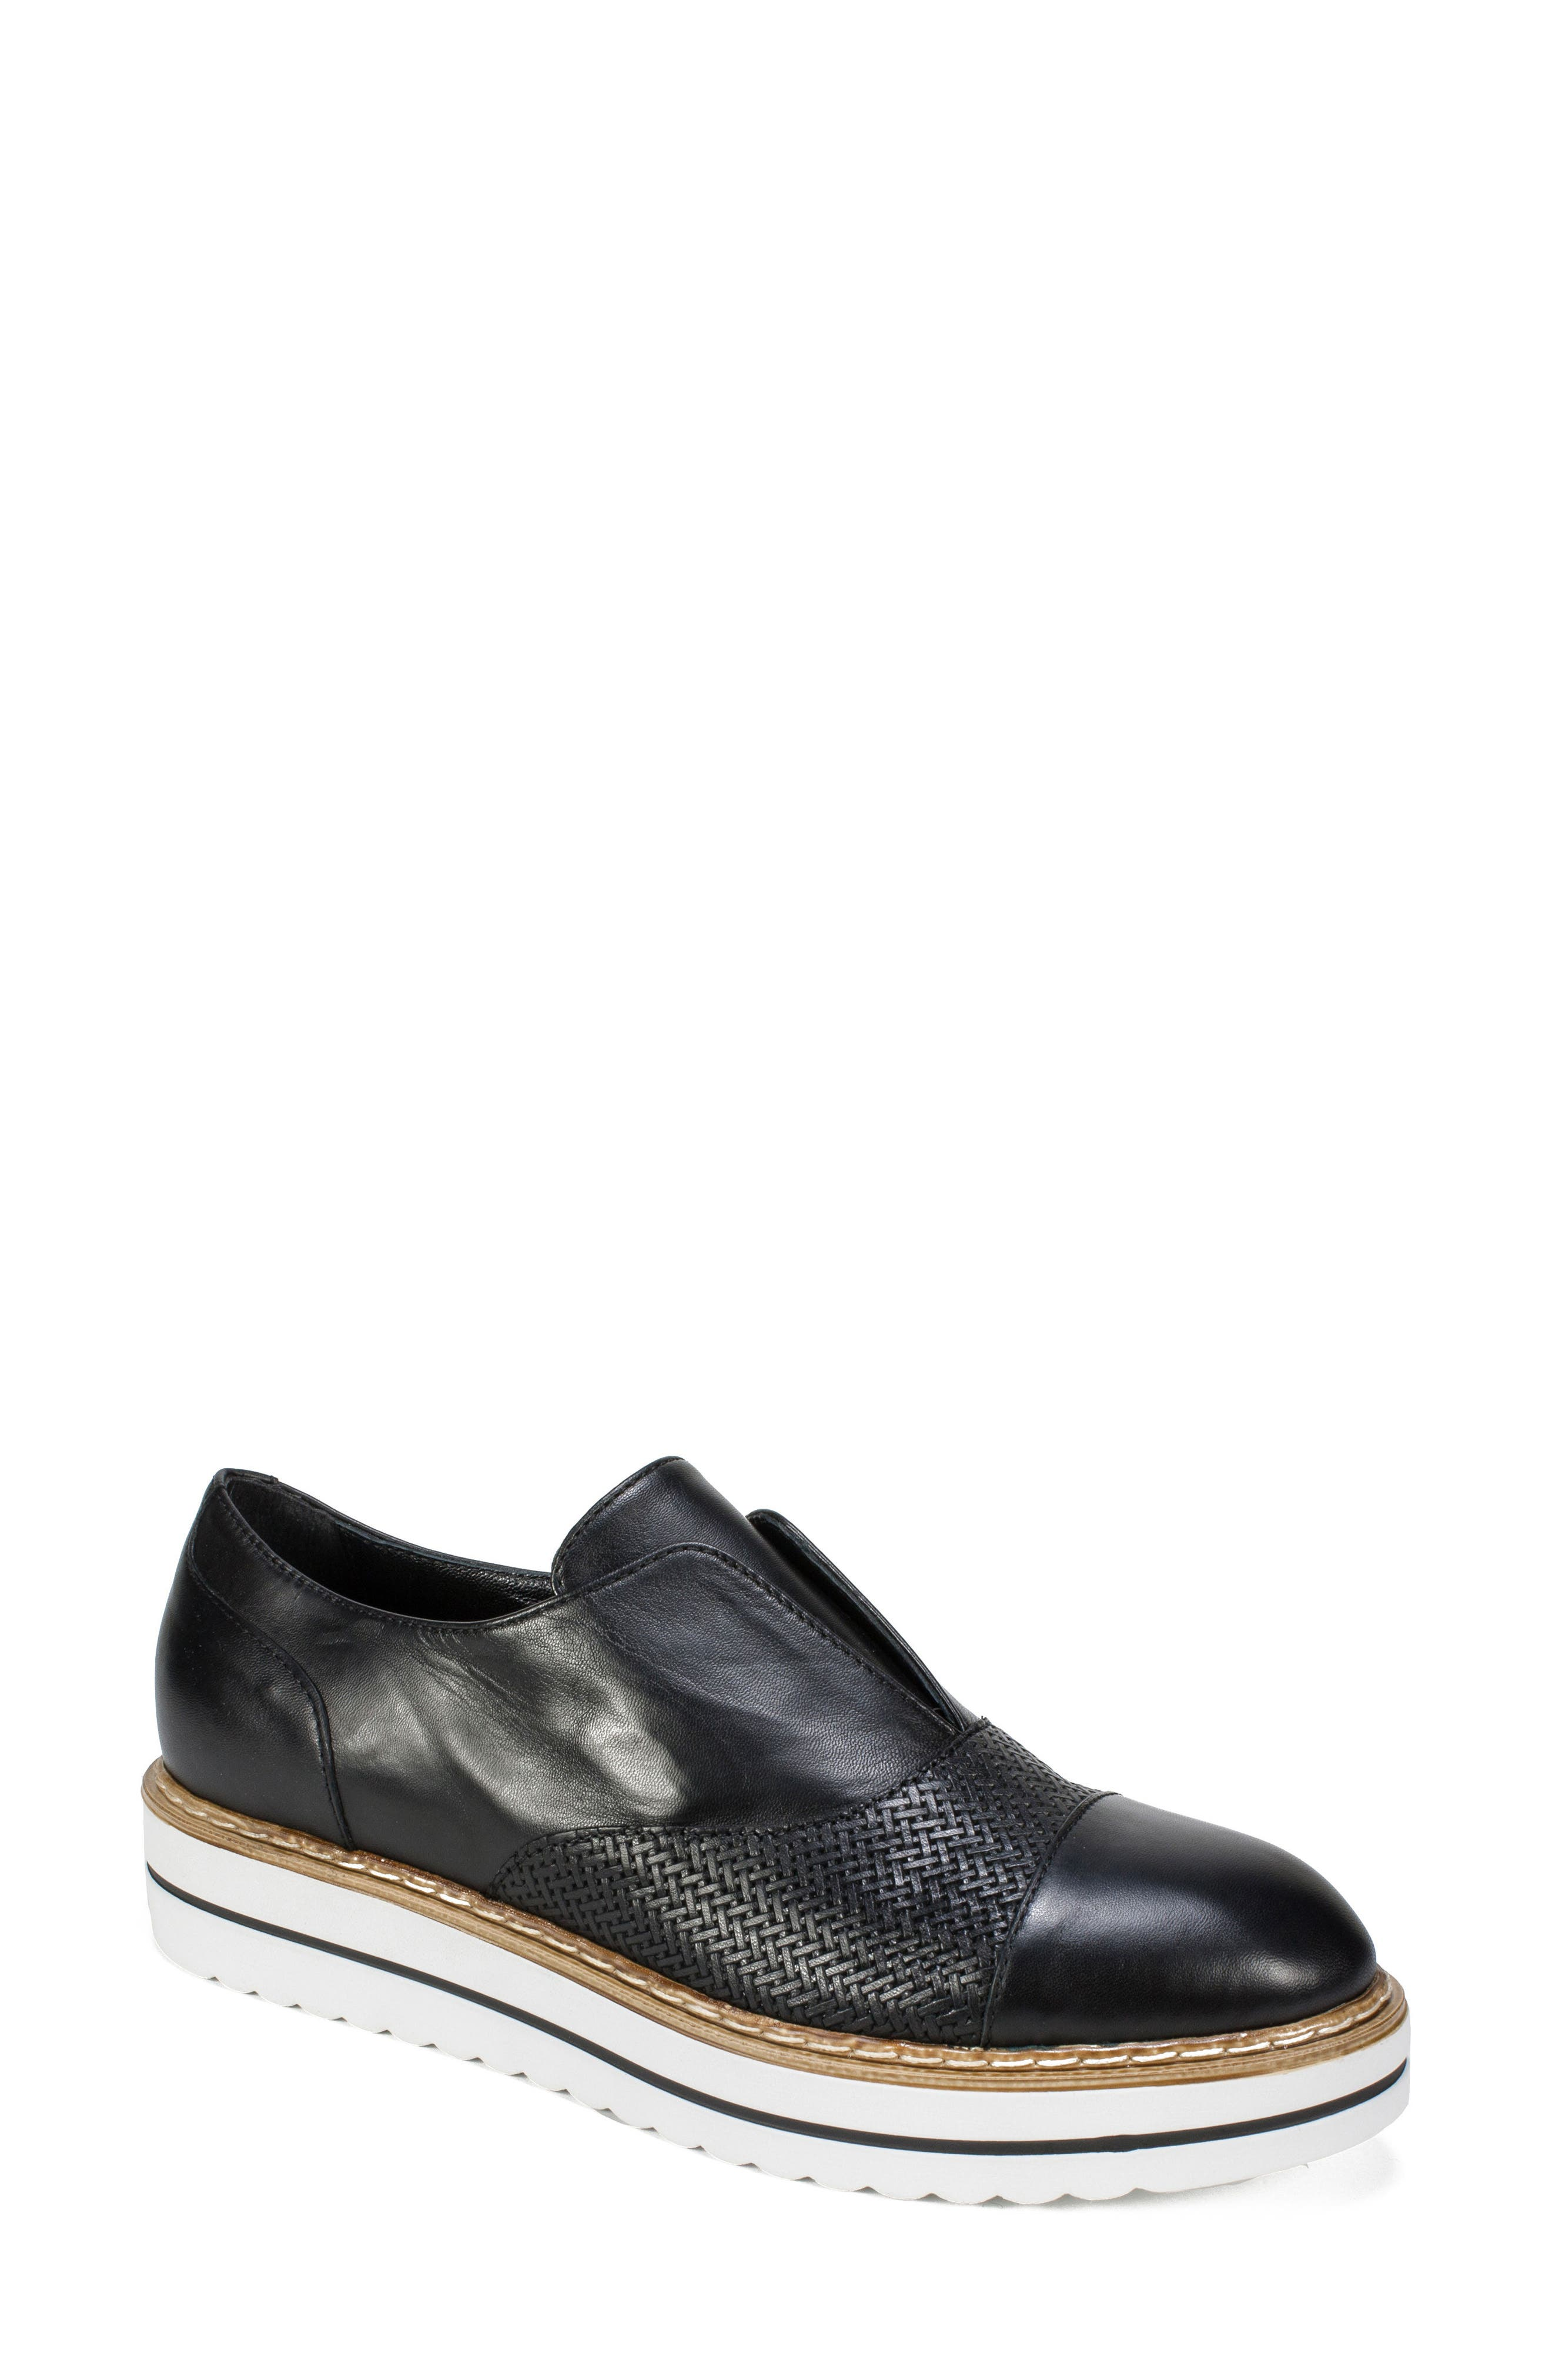 Bliss Loafer,                             Main thumbnail 1, color,                             001